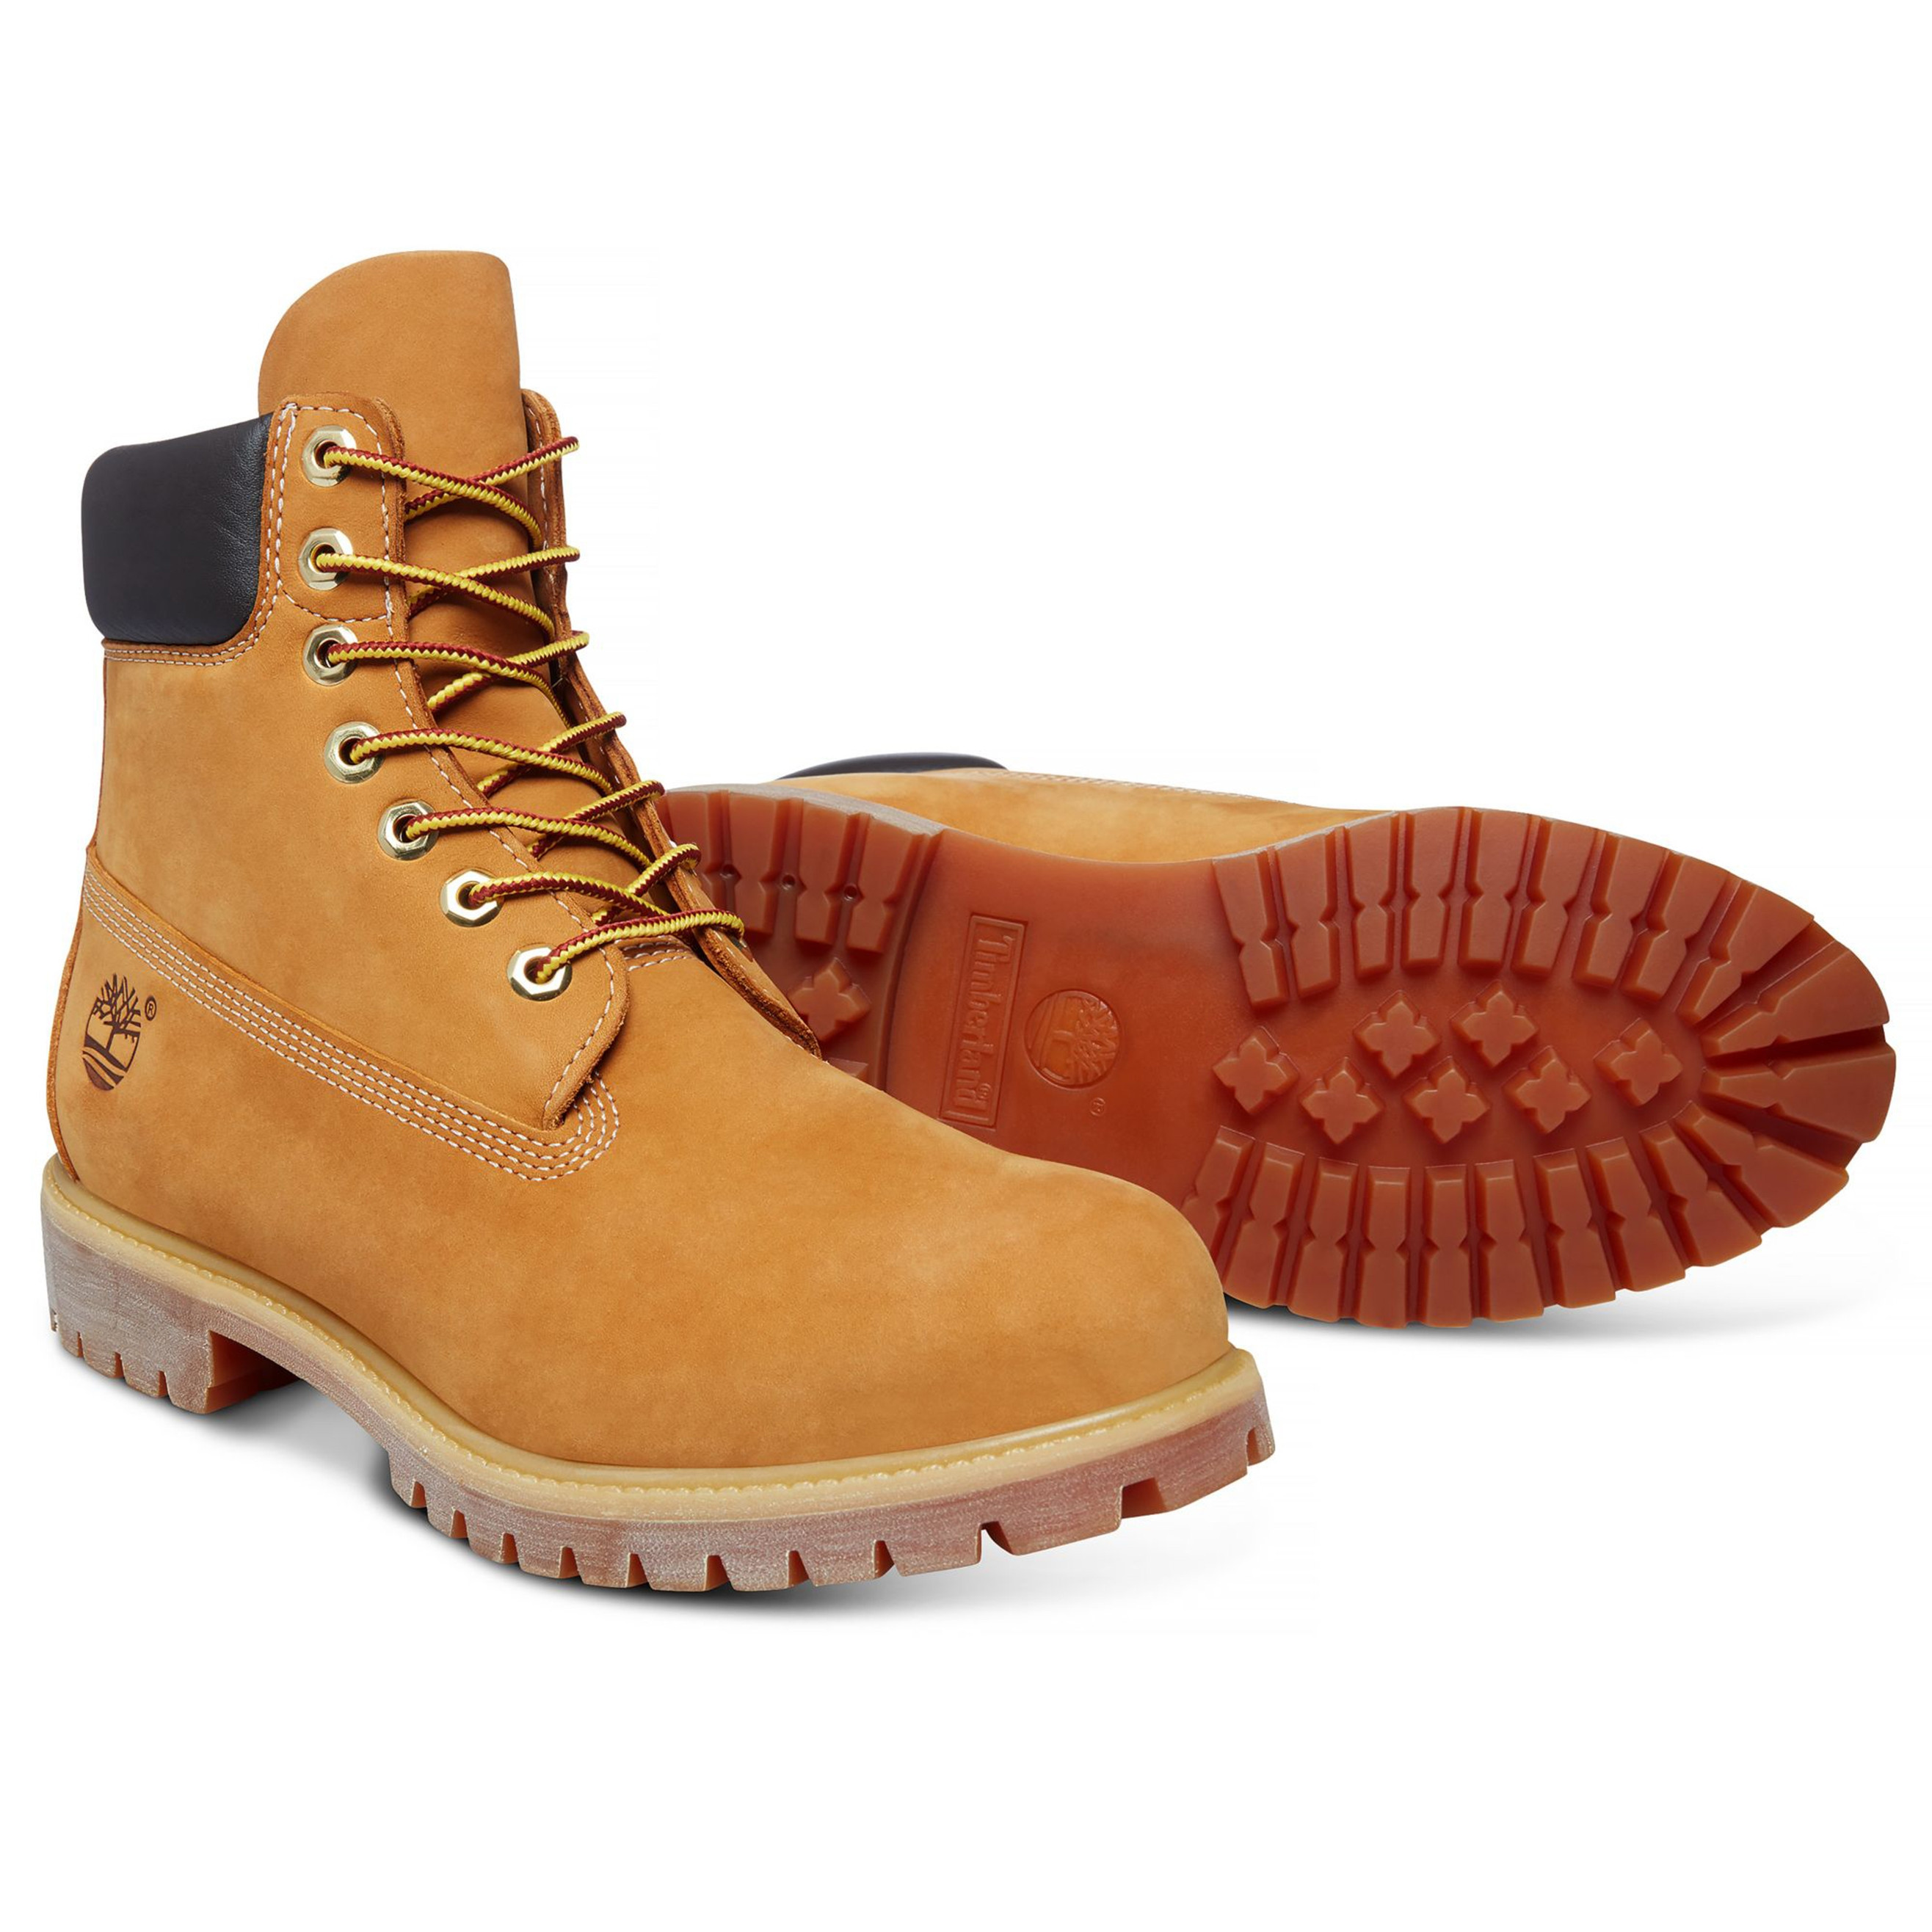 Timberland Mens Premium 6 Inch Leather High Boots Boots Wheat Yellow ... b9a4d49fec93a